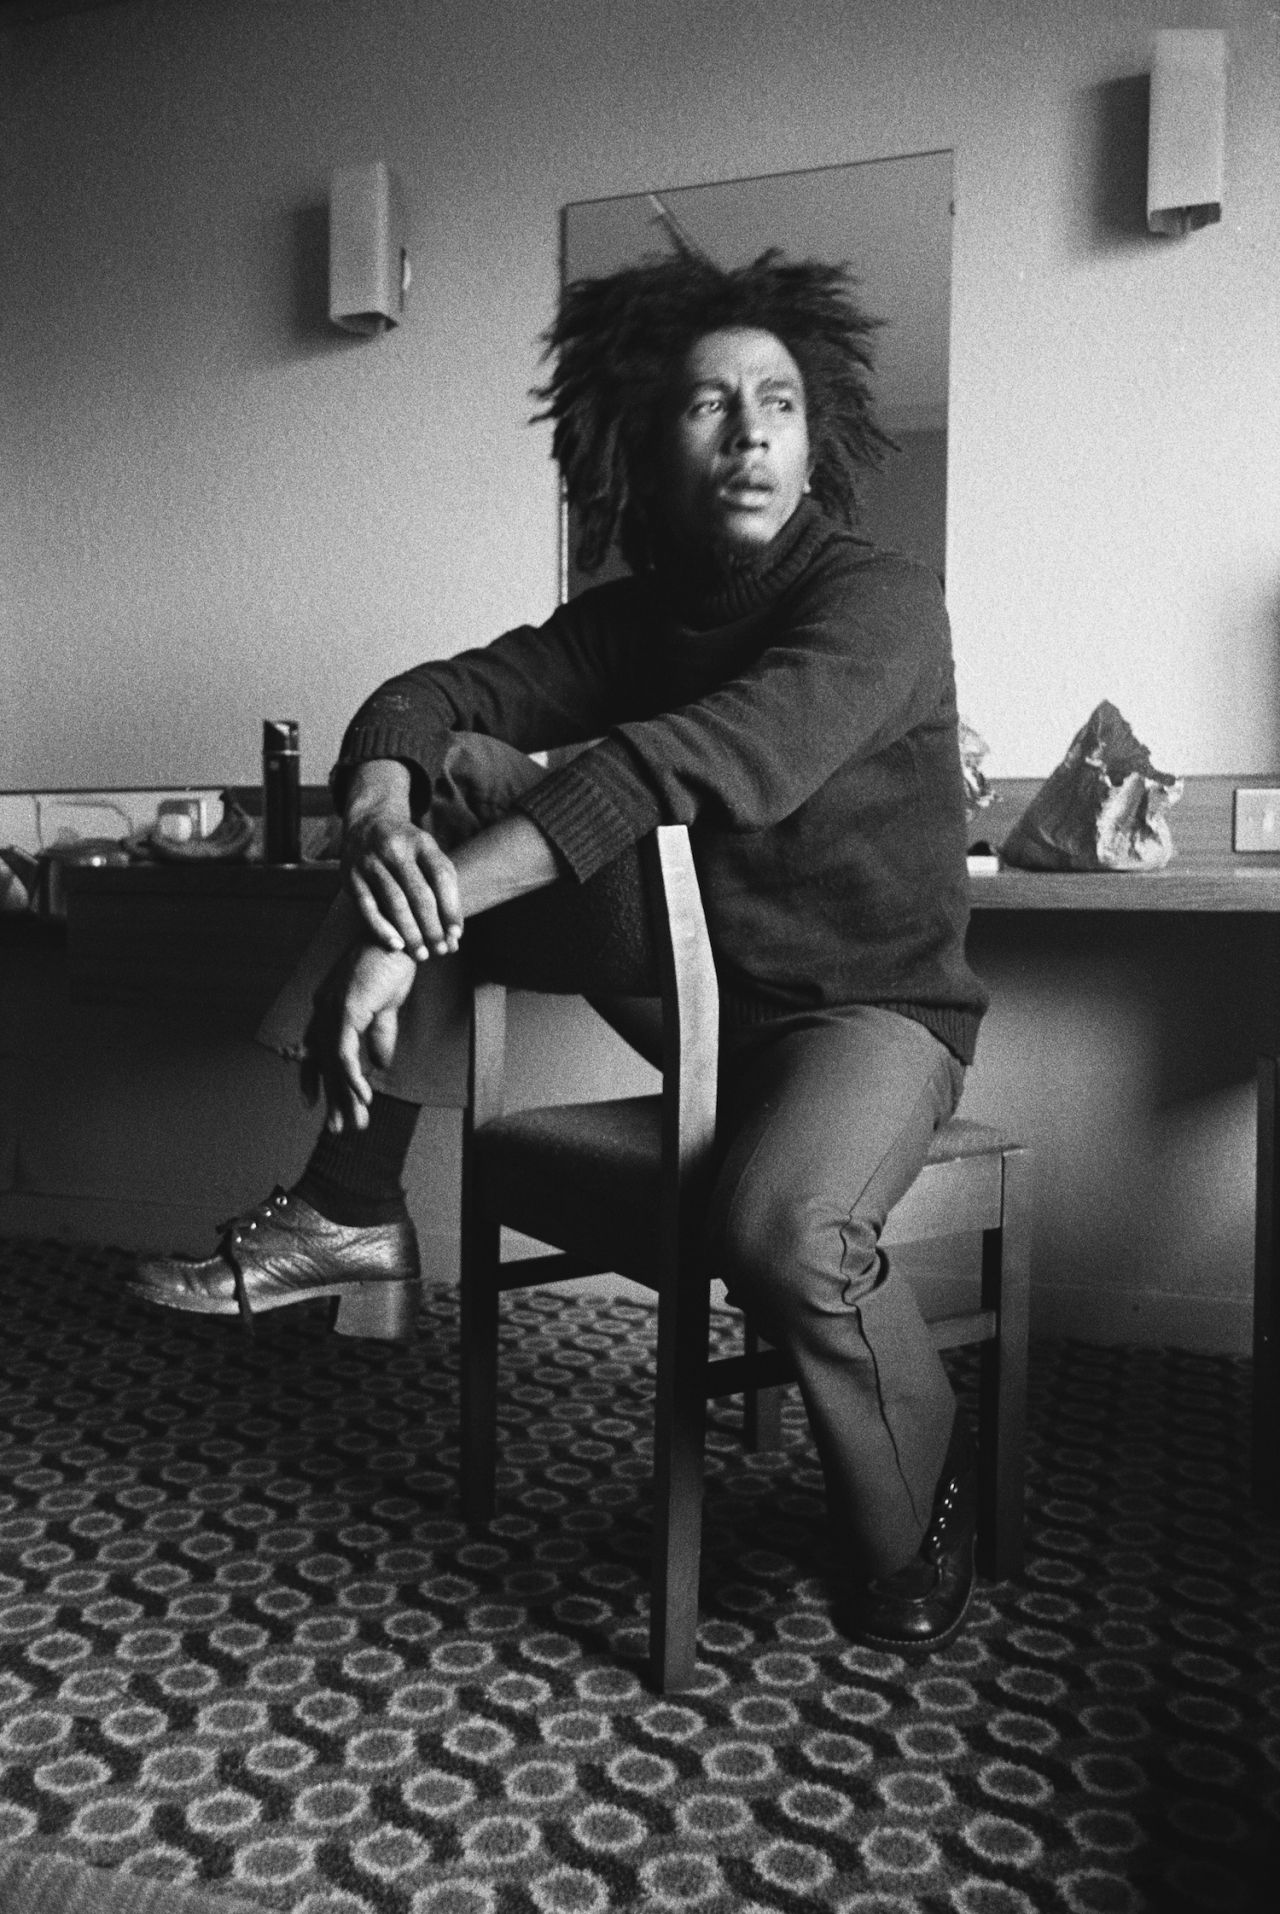 Photo Of Bob Marley 505113 Upload Date 2012 07 02 Number Votes 1 There Are 17 More Pics In The Gallery